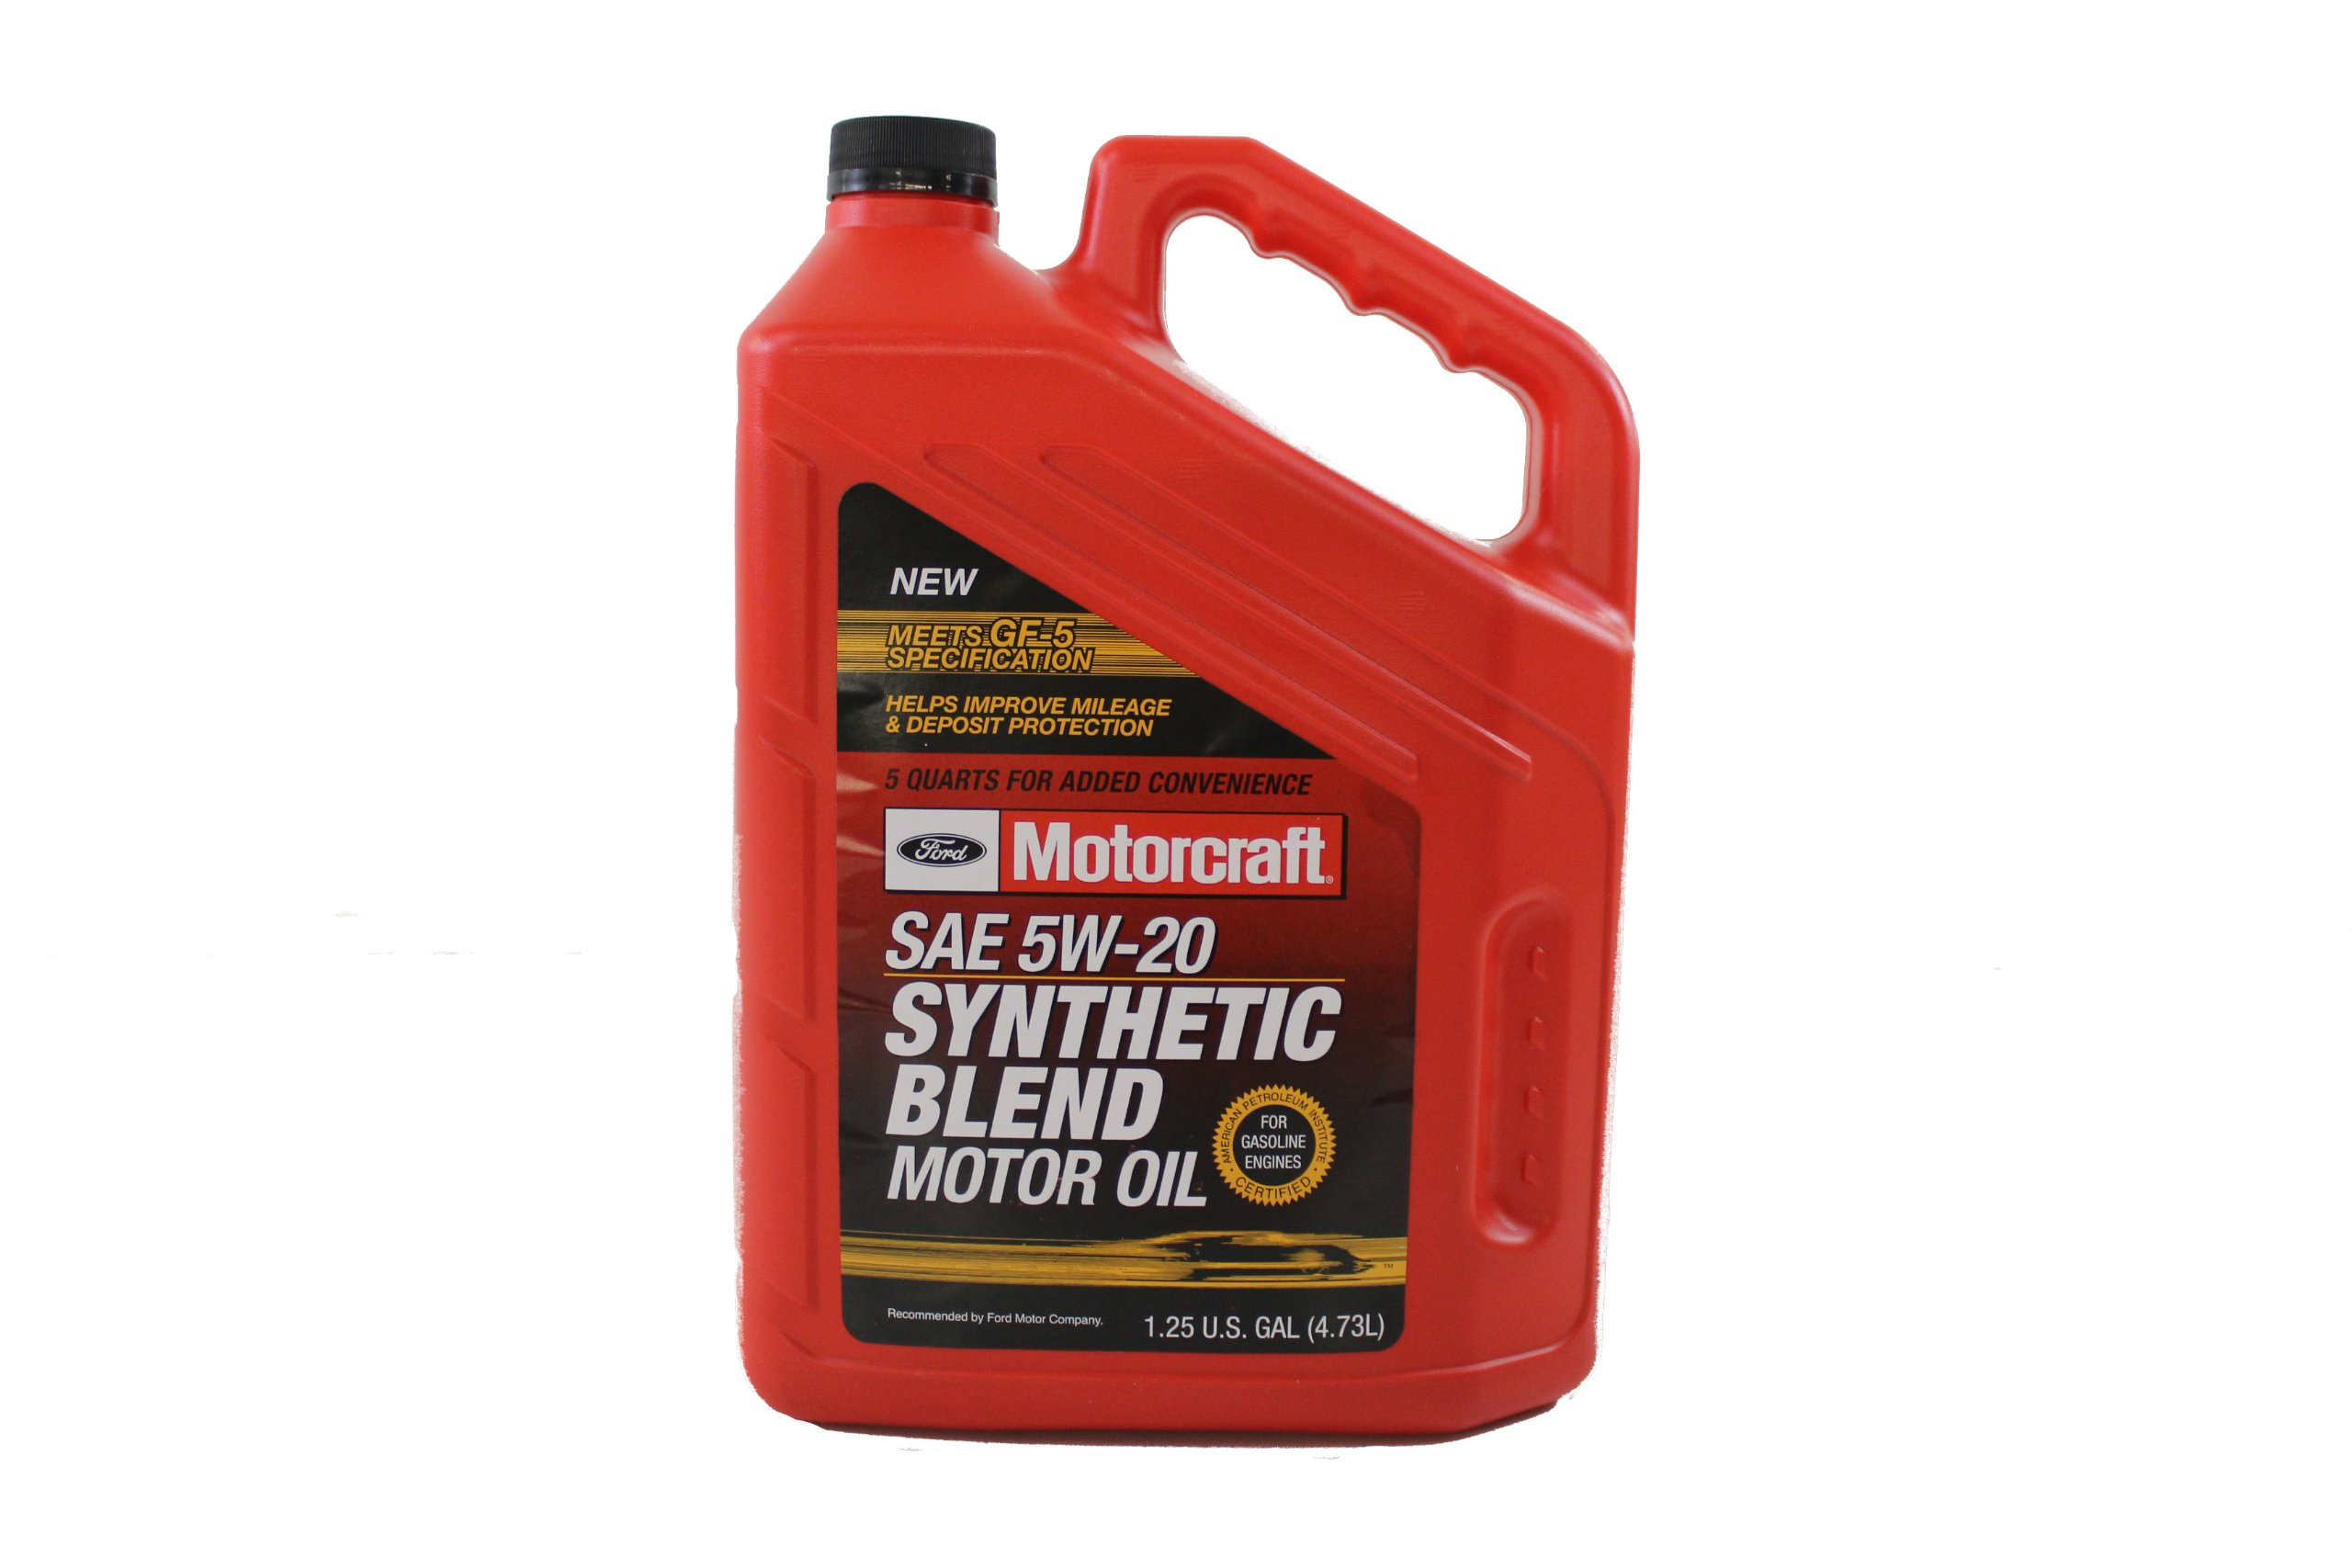 Ford Genuine Fluid XO-5W20-5Q3SP SAE 5W-20 Premium Synthetic Blend Motor Oil - 5 Quart Jug by Ford